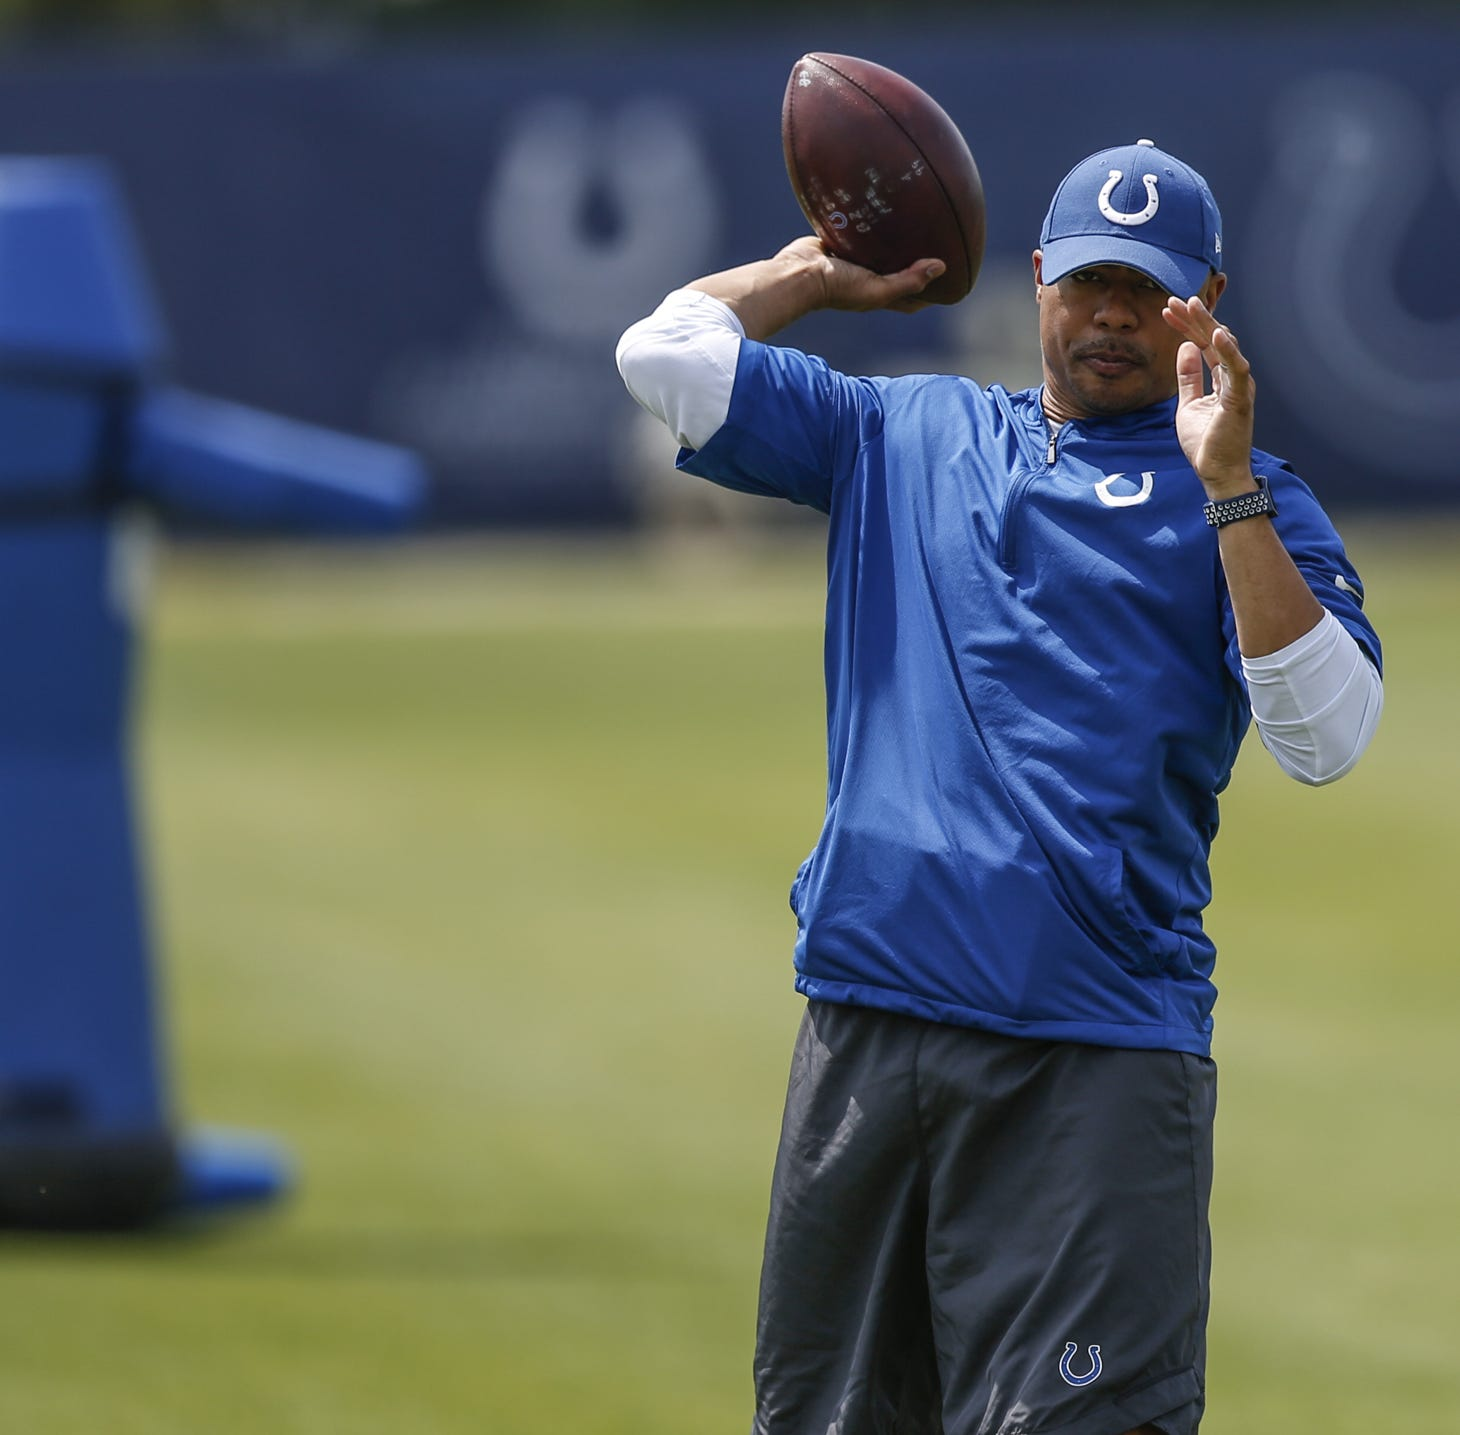 Colts QB Andrew Luck's position coach a mystery: Who is Marcus Brady?